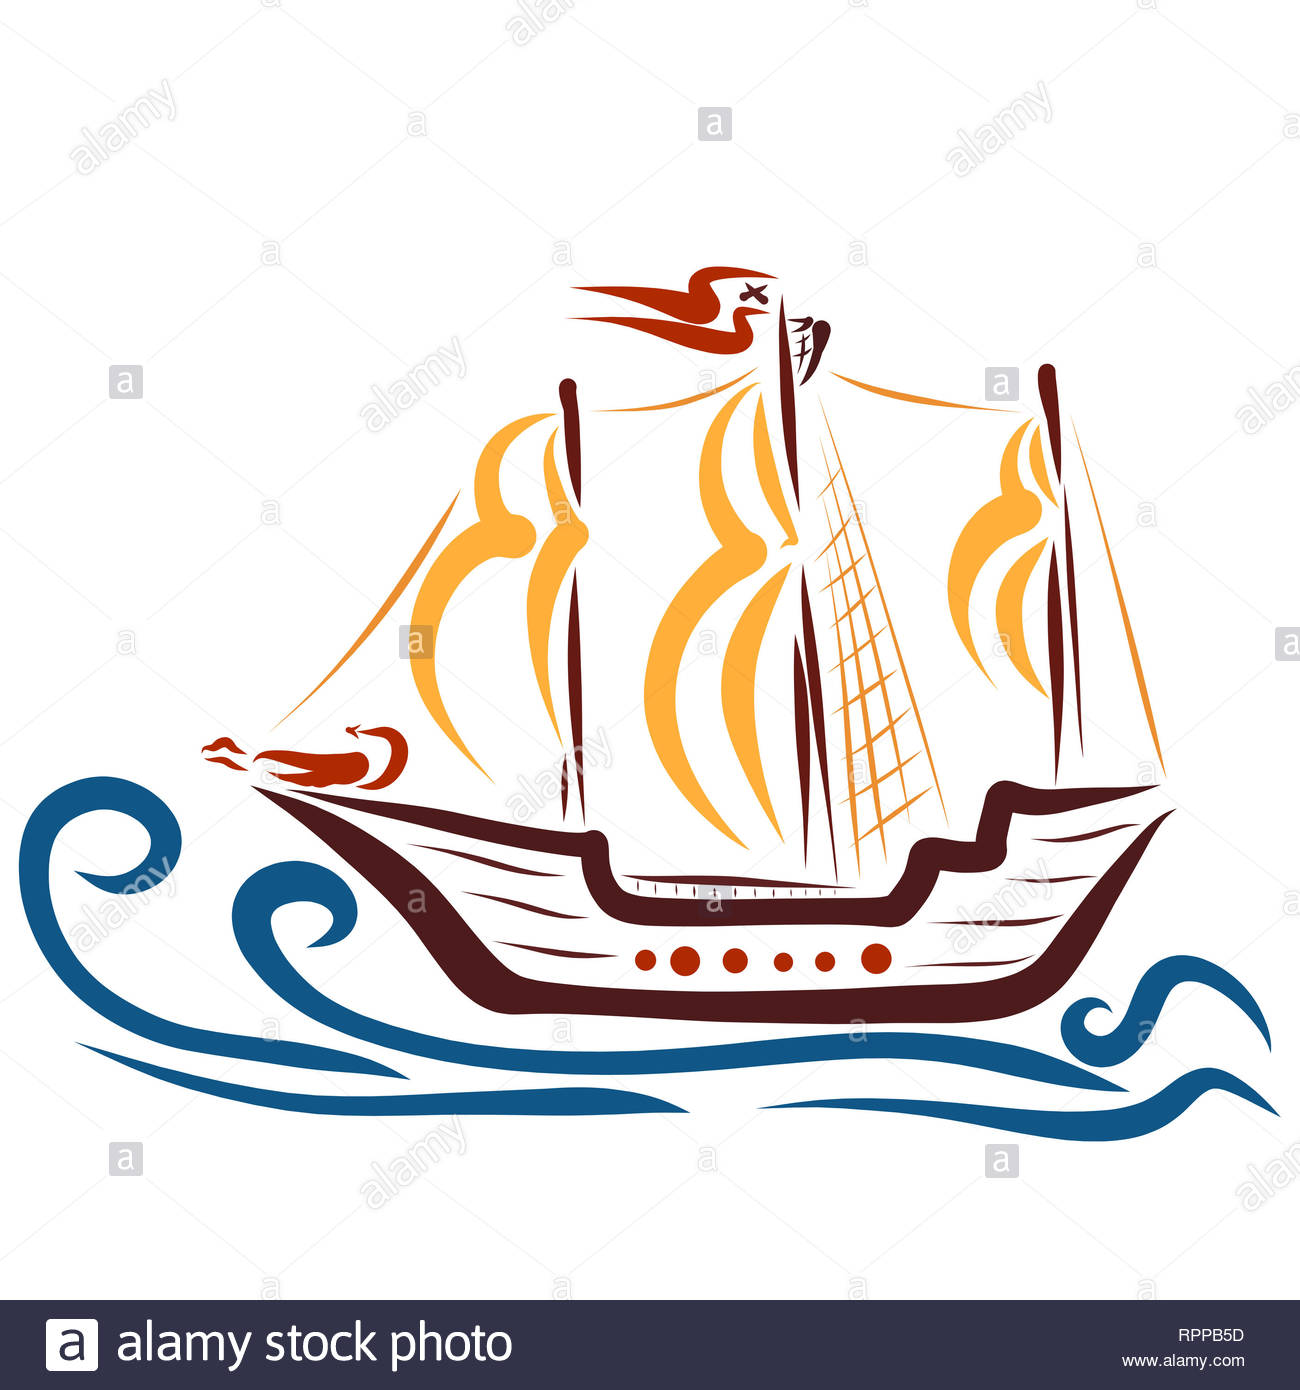 ship with sails floating on the waves, the figure of a dragon - Stock Image